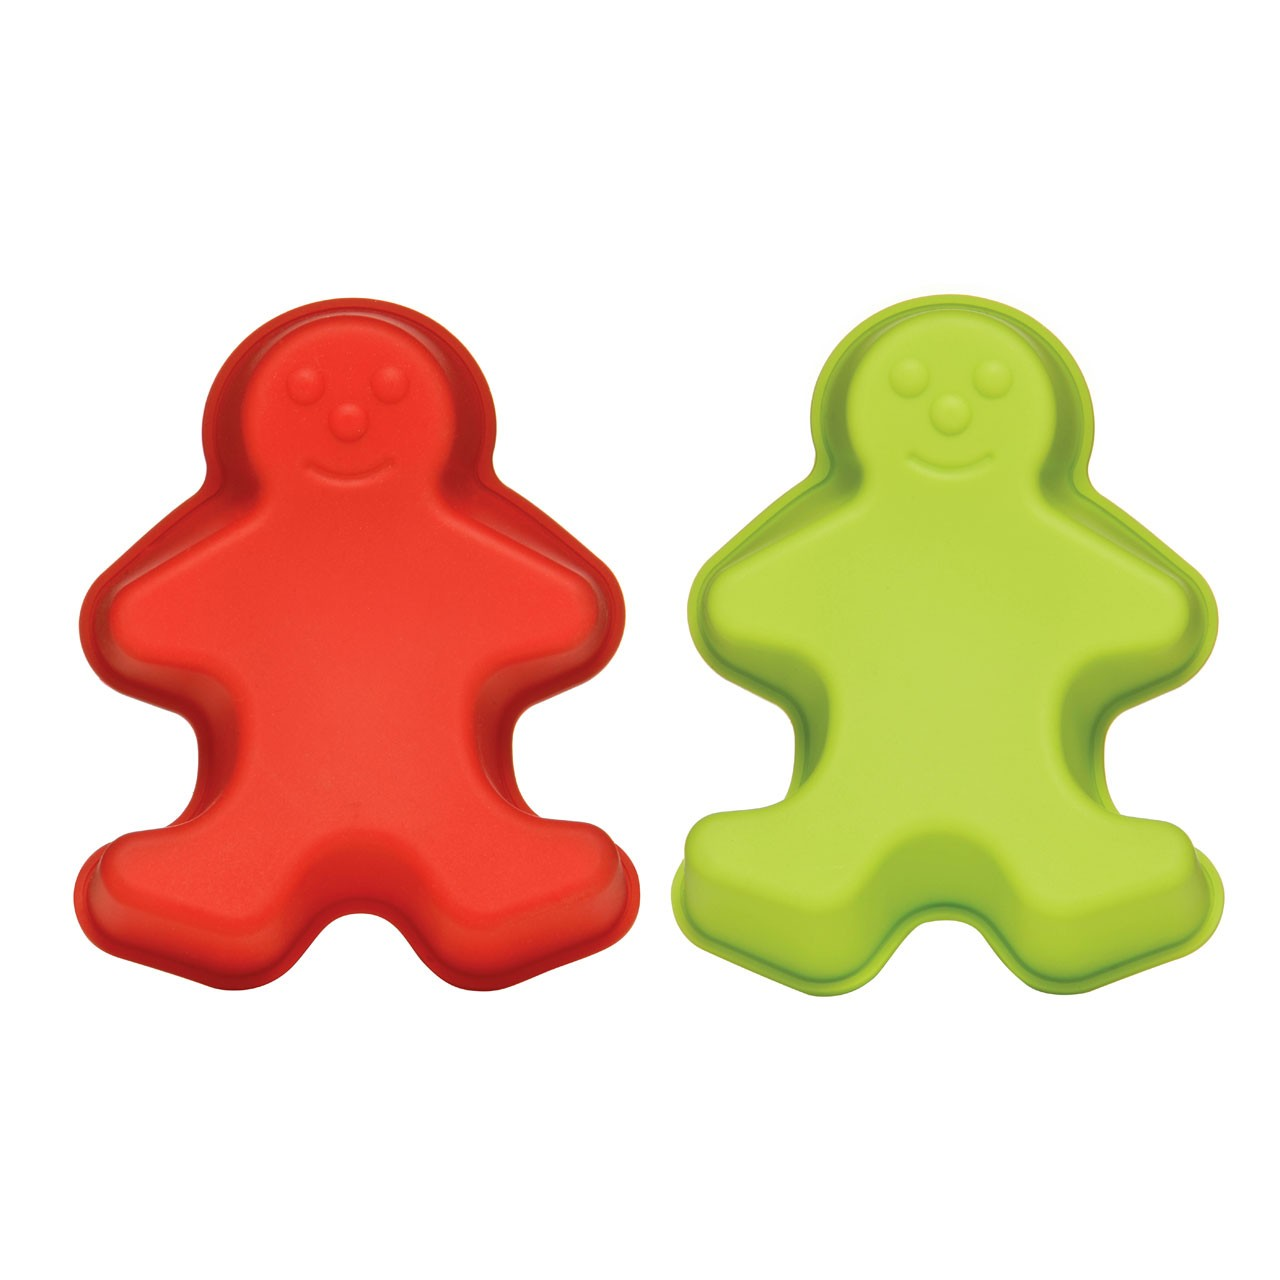 Gingerbread Man Silicone Cake Moulds - Set of 2